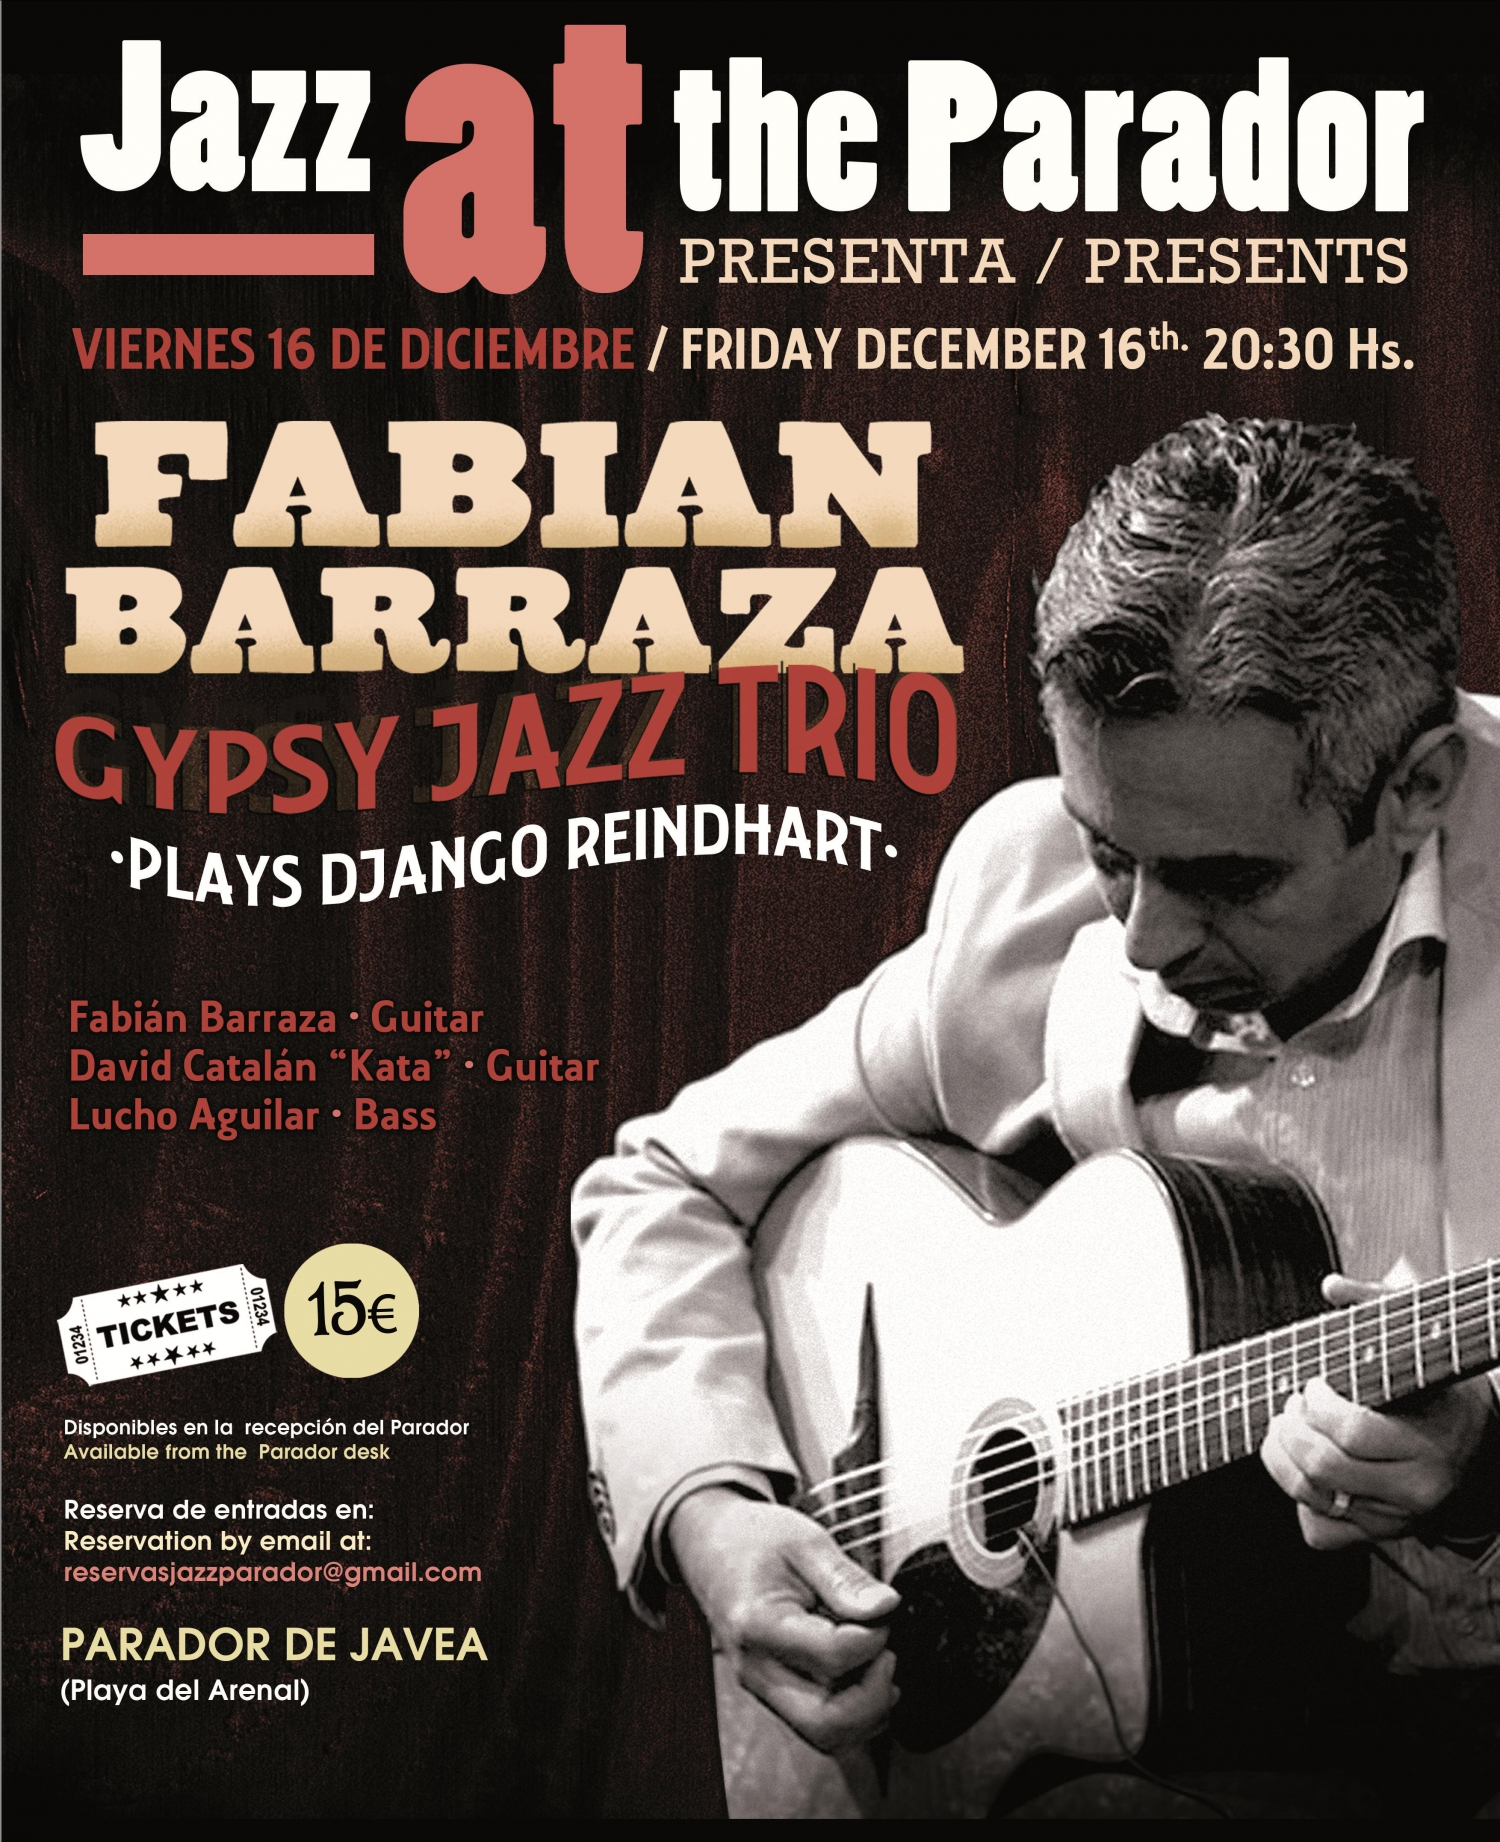 FABIAN BARRAZA GYPSY JAZZ TRIO